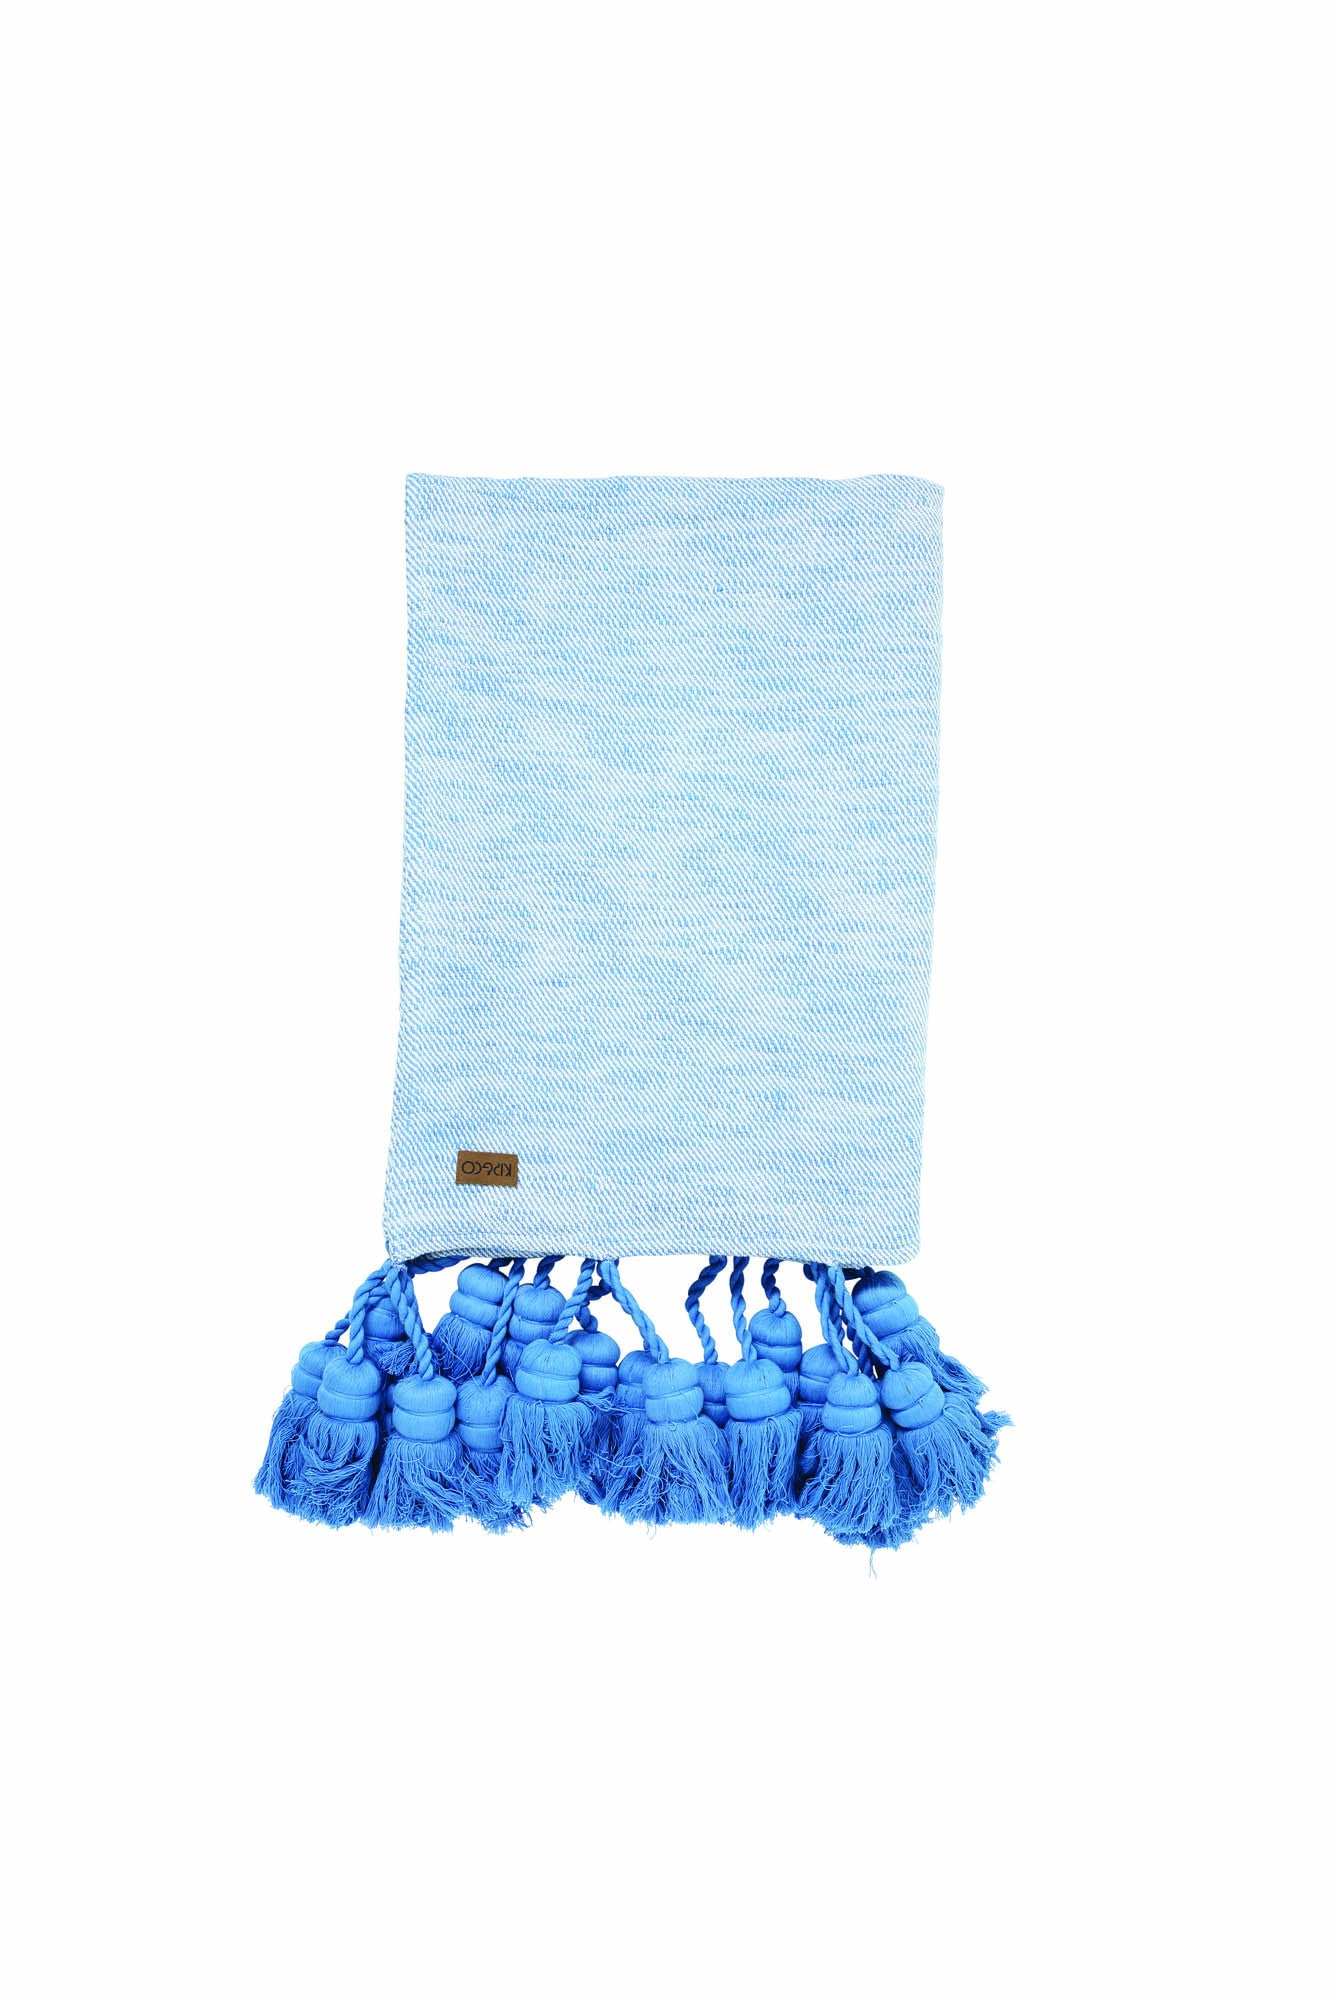 AW17 Kip and Co Marina Tassel Throw